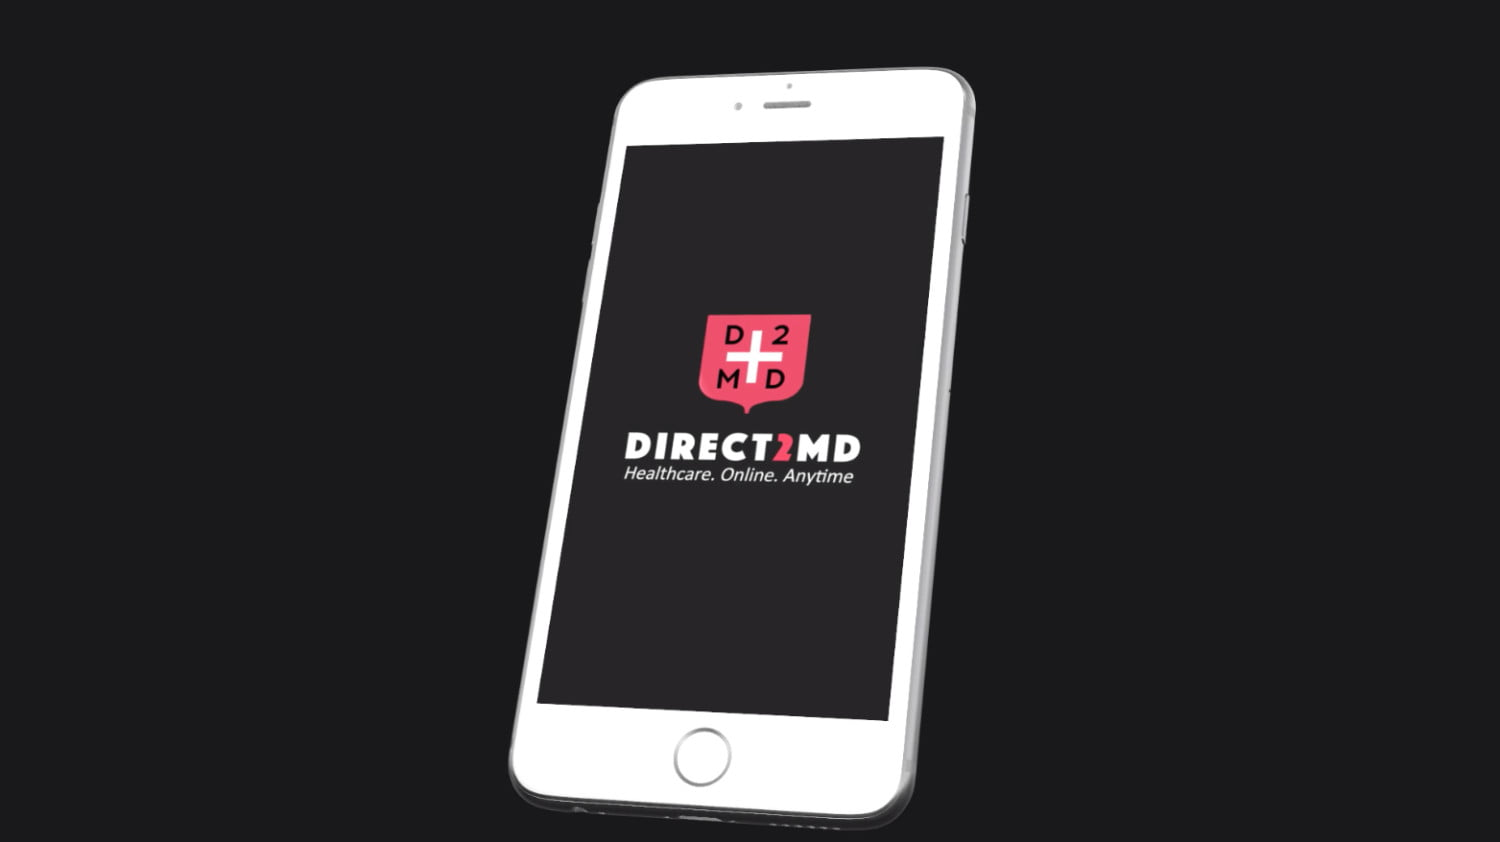 Direct 2 MD